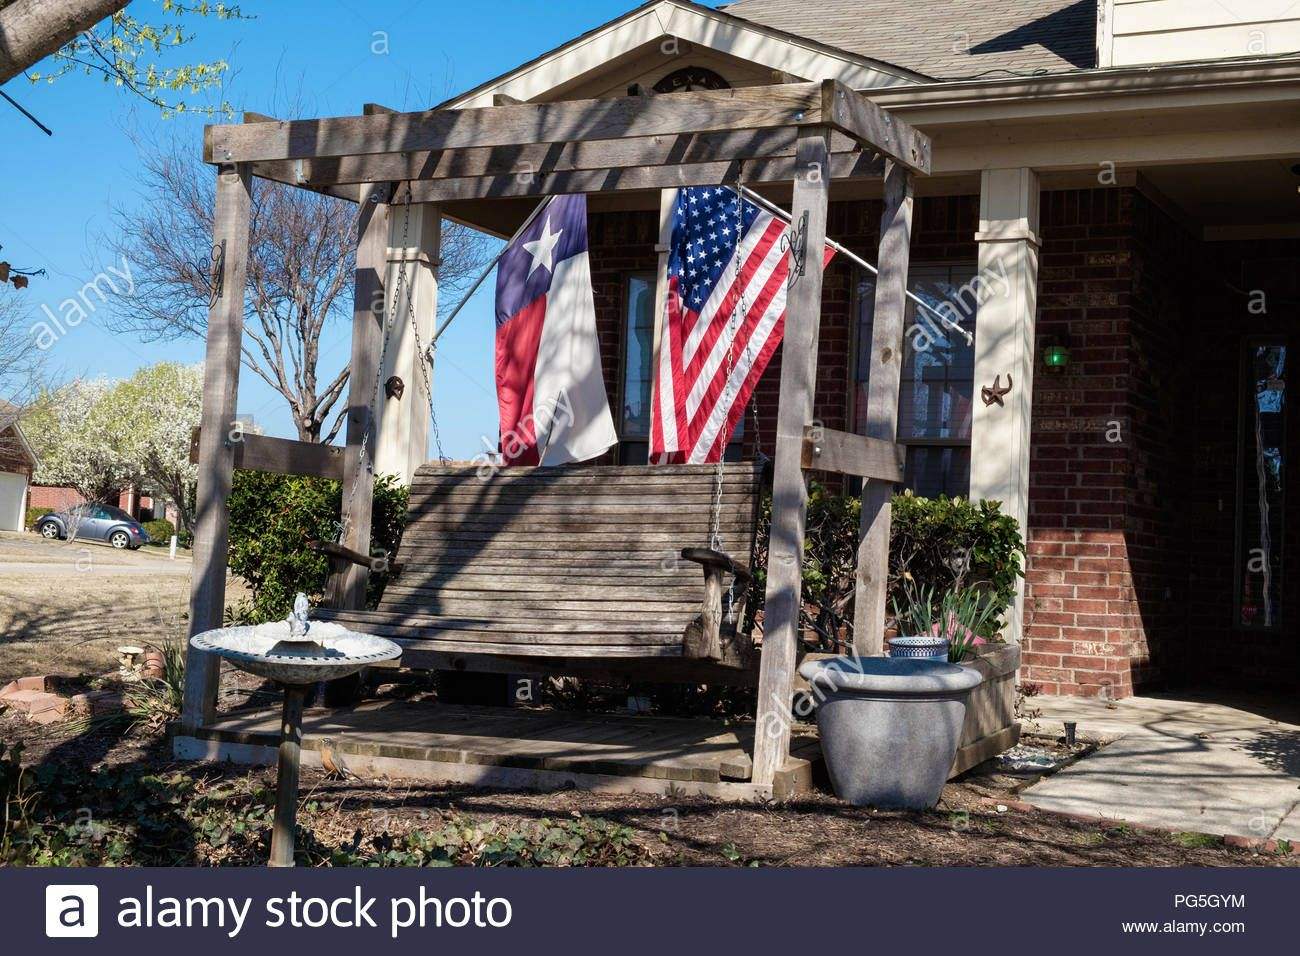 Pin On Stock Photosjudi Saunders Pertaining To American Flag Porch Swings (View 7 of 25)